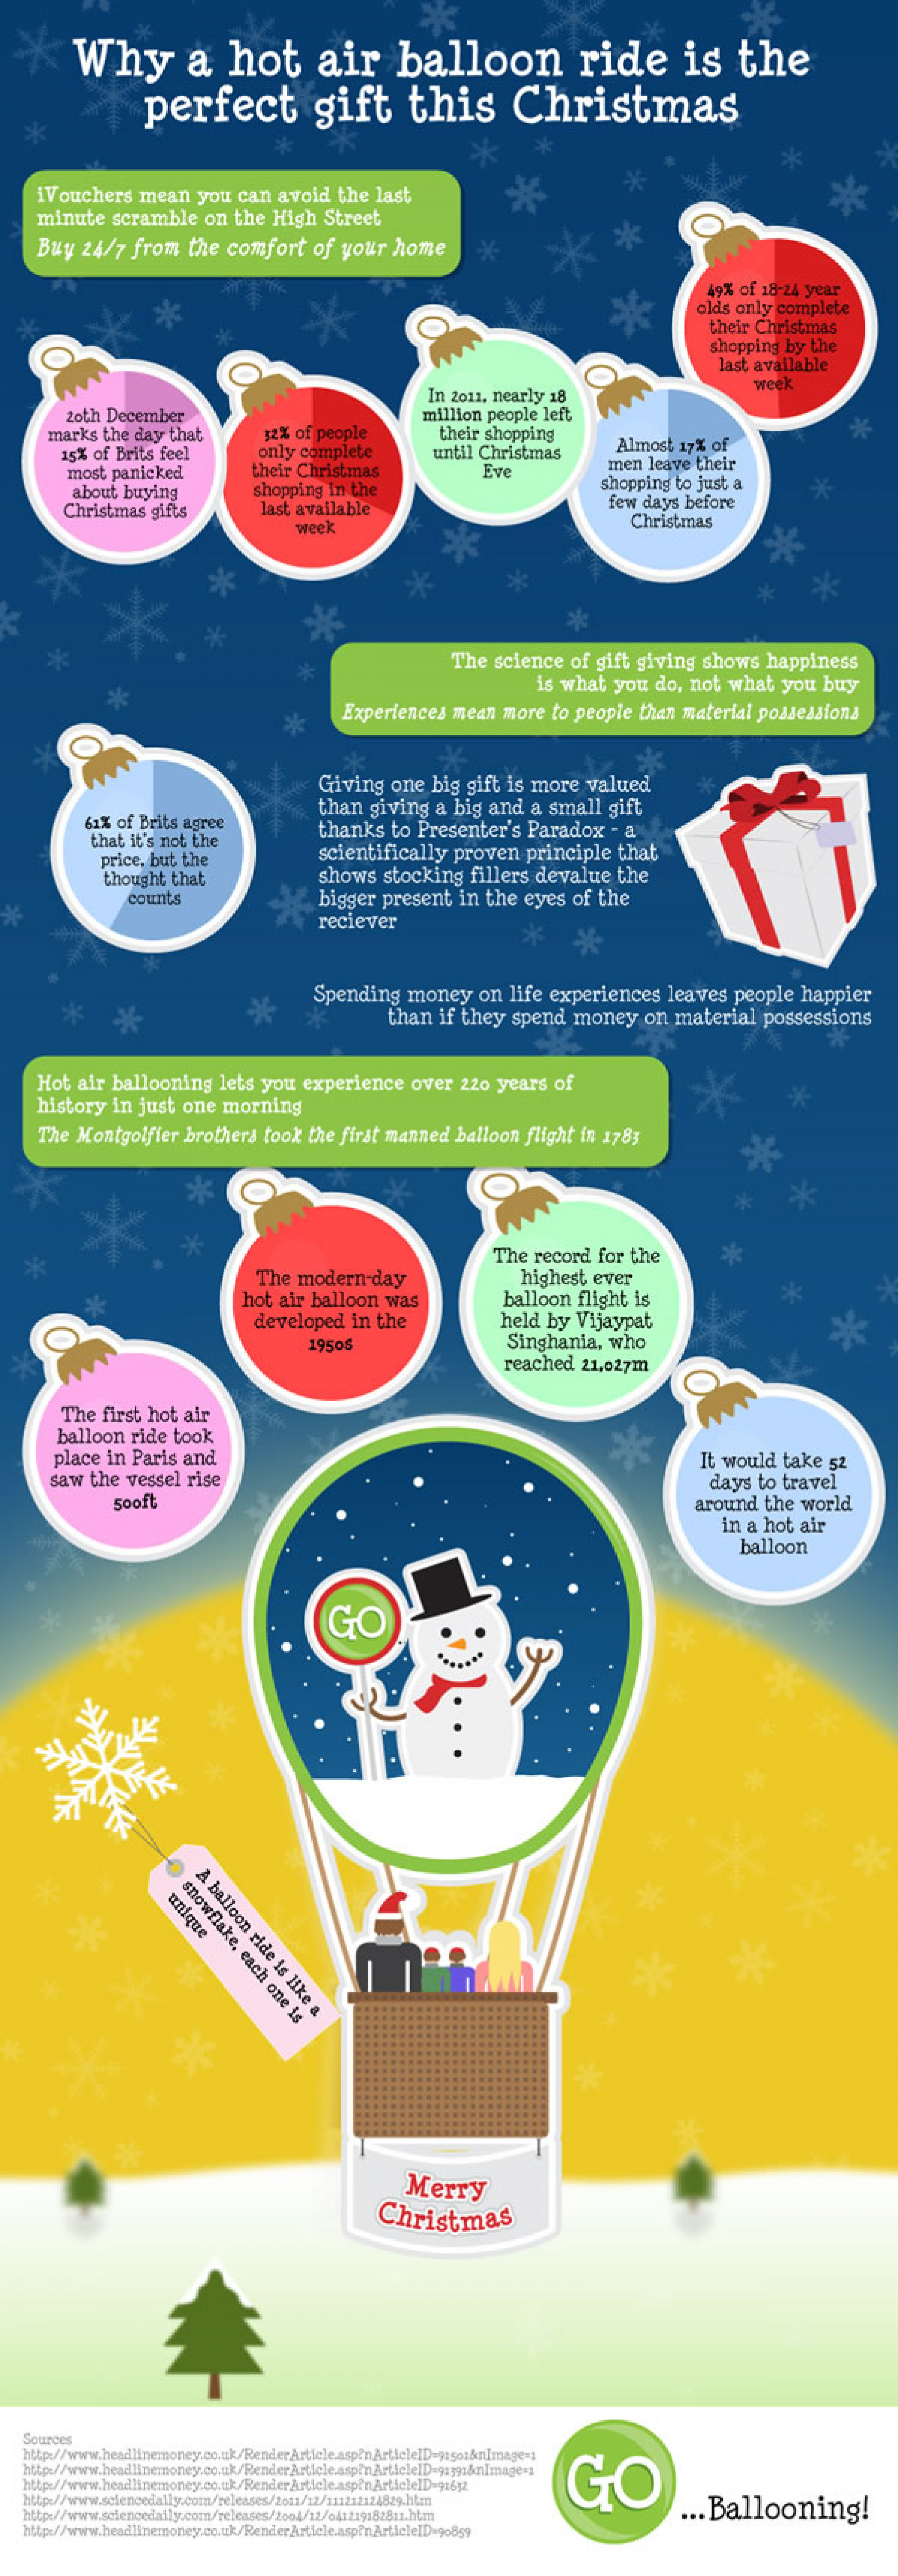 Why a hot air balloon ride is the perfect gift this Christmas Infographic